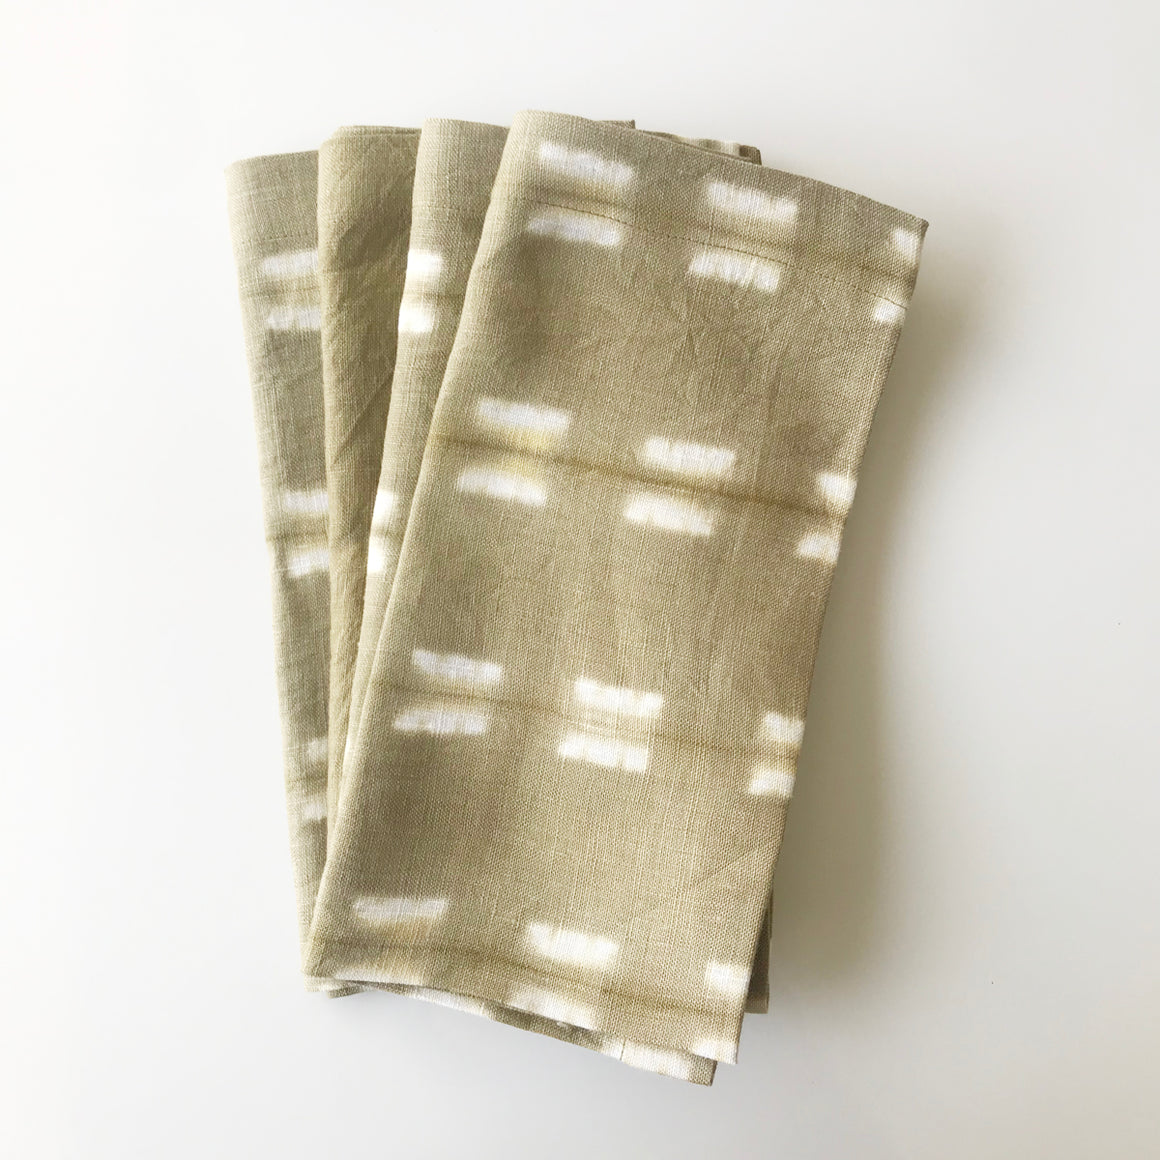 Onion Dye Itajime Napkins - Set of 4 - KESTREL